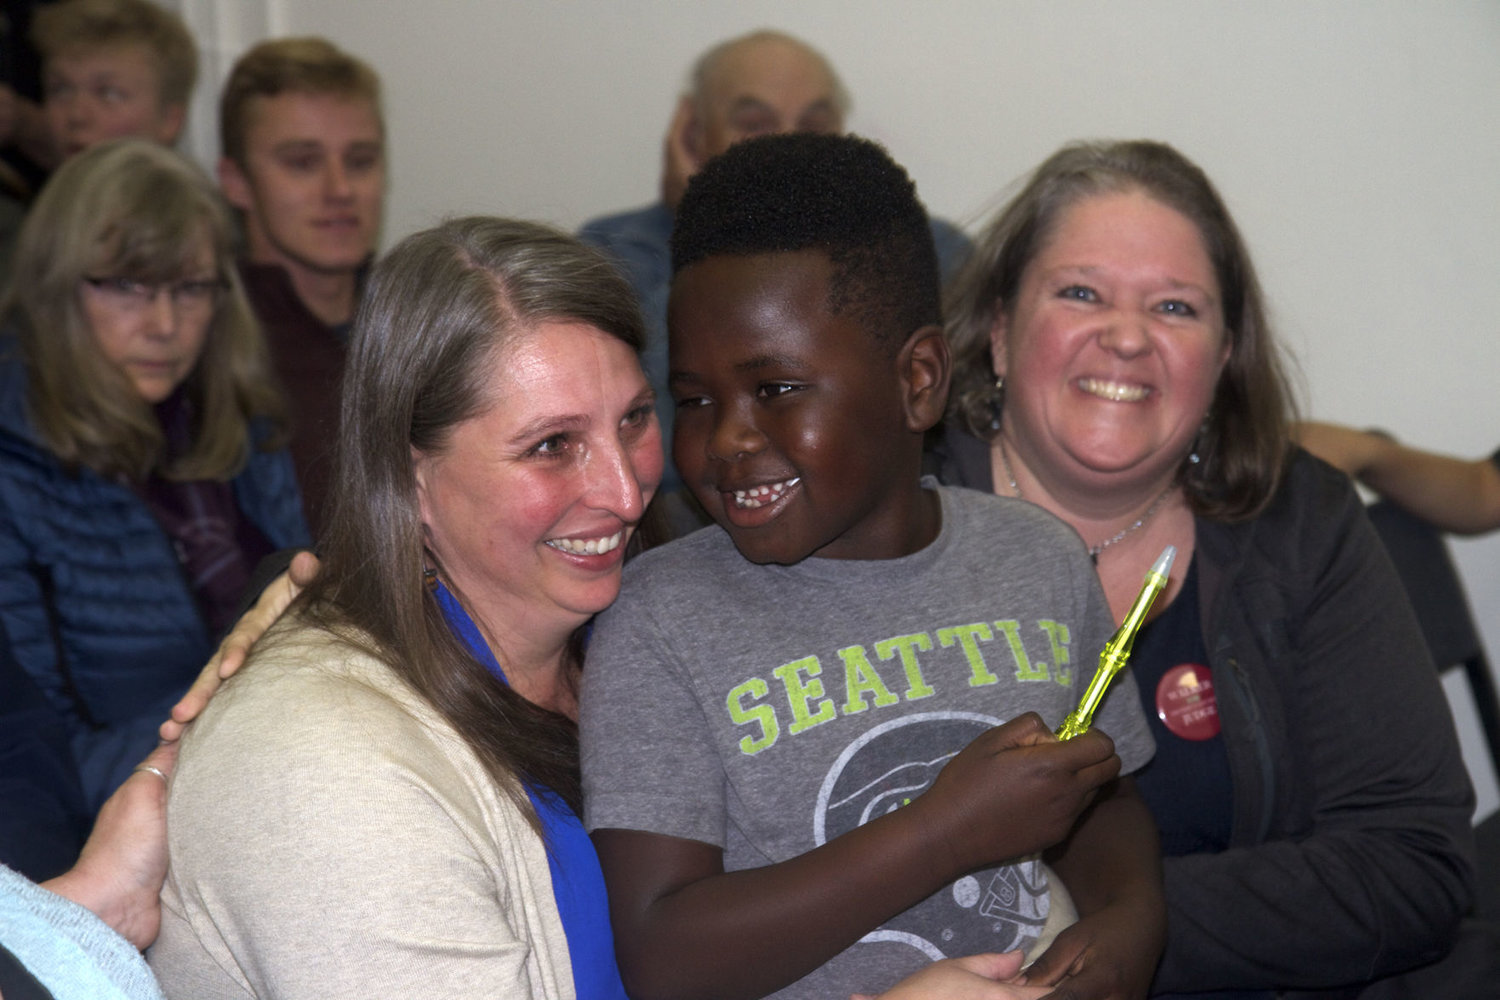 Mindy Walker, seen here holding her son Kasongo Thompson, is all smiles after hearing she led the race for District Court Judge during the announcement of initial results at 8 p.m., Nov. 6, at the Jefferson County Courthouse. Her supporter, Amanda Wilson is seen at right. Walker, with 9,135 votes cast, or 58.16 percent, likely will become District Judge. Her opponent, Noah Harrison, trailed behind with 6,572 votes cast, or 41.84 percent.